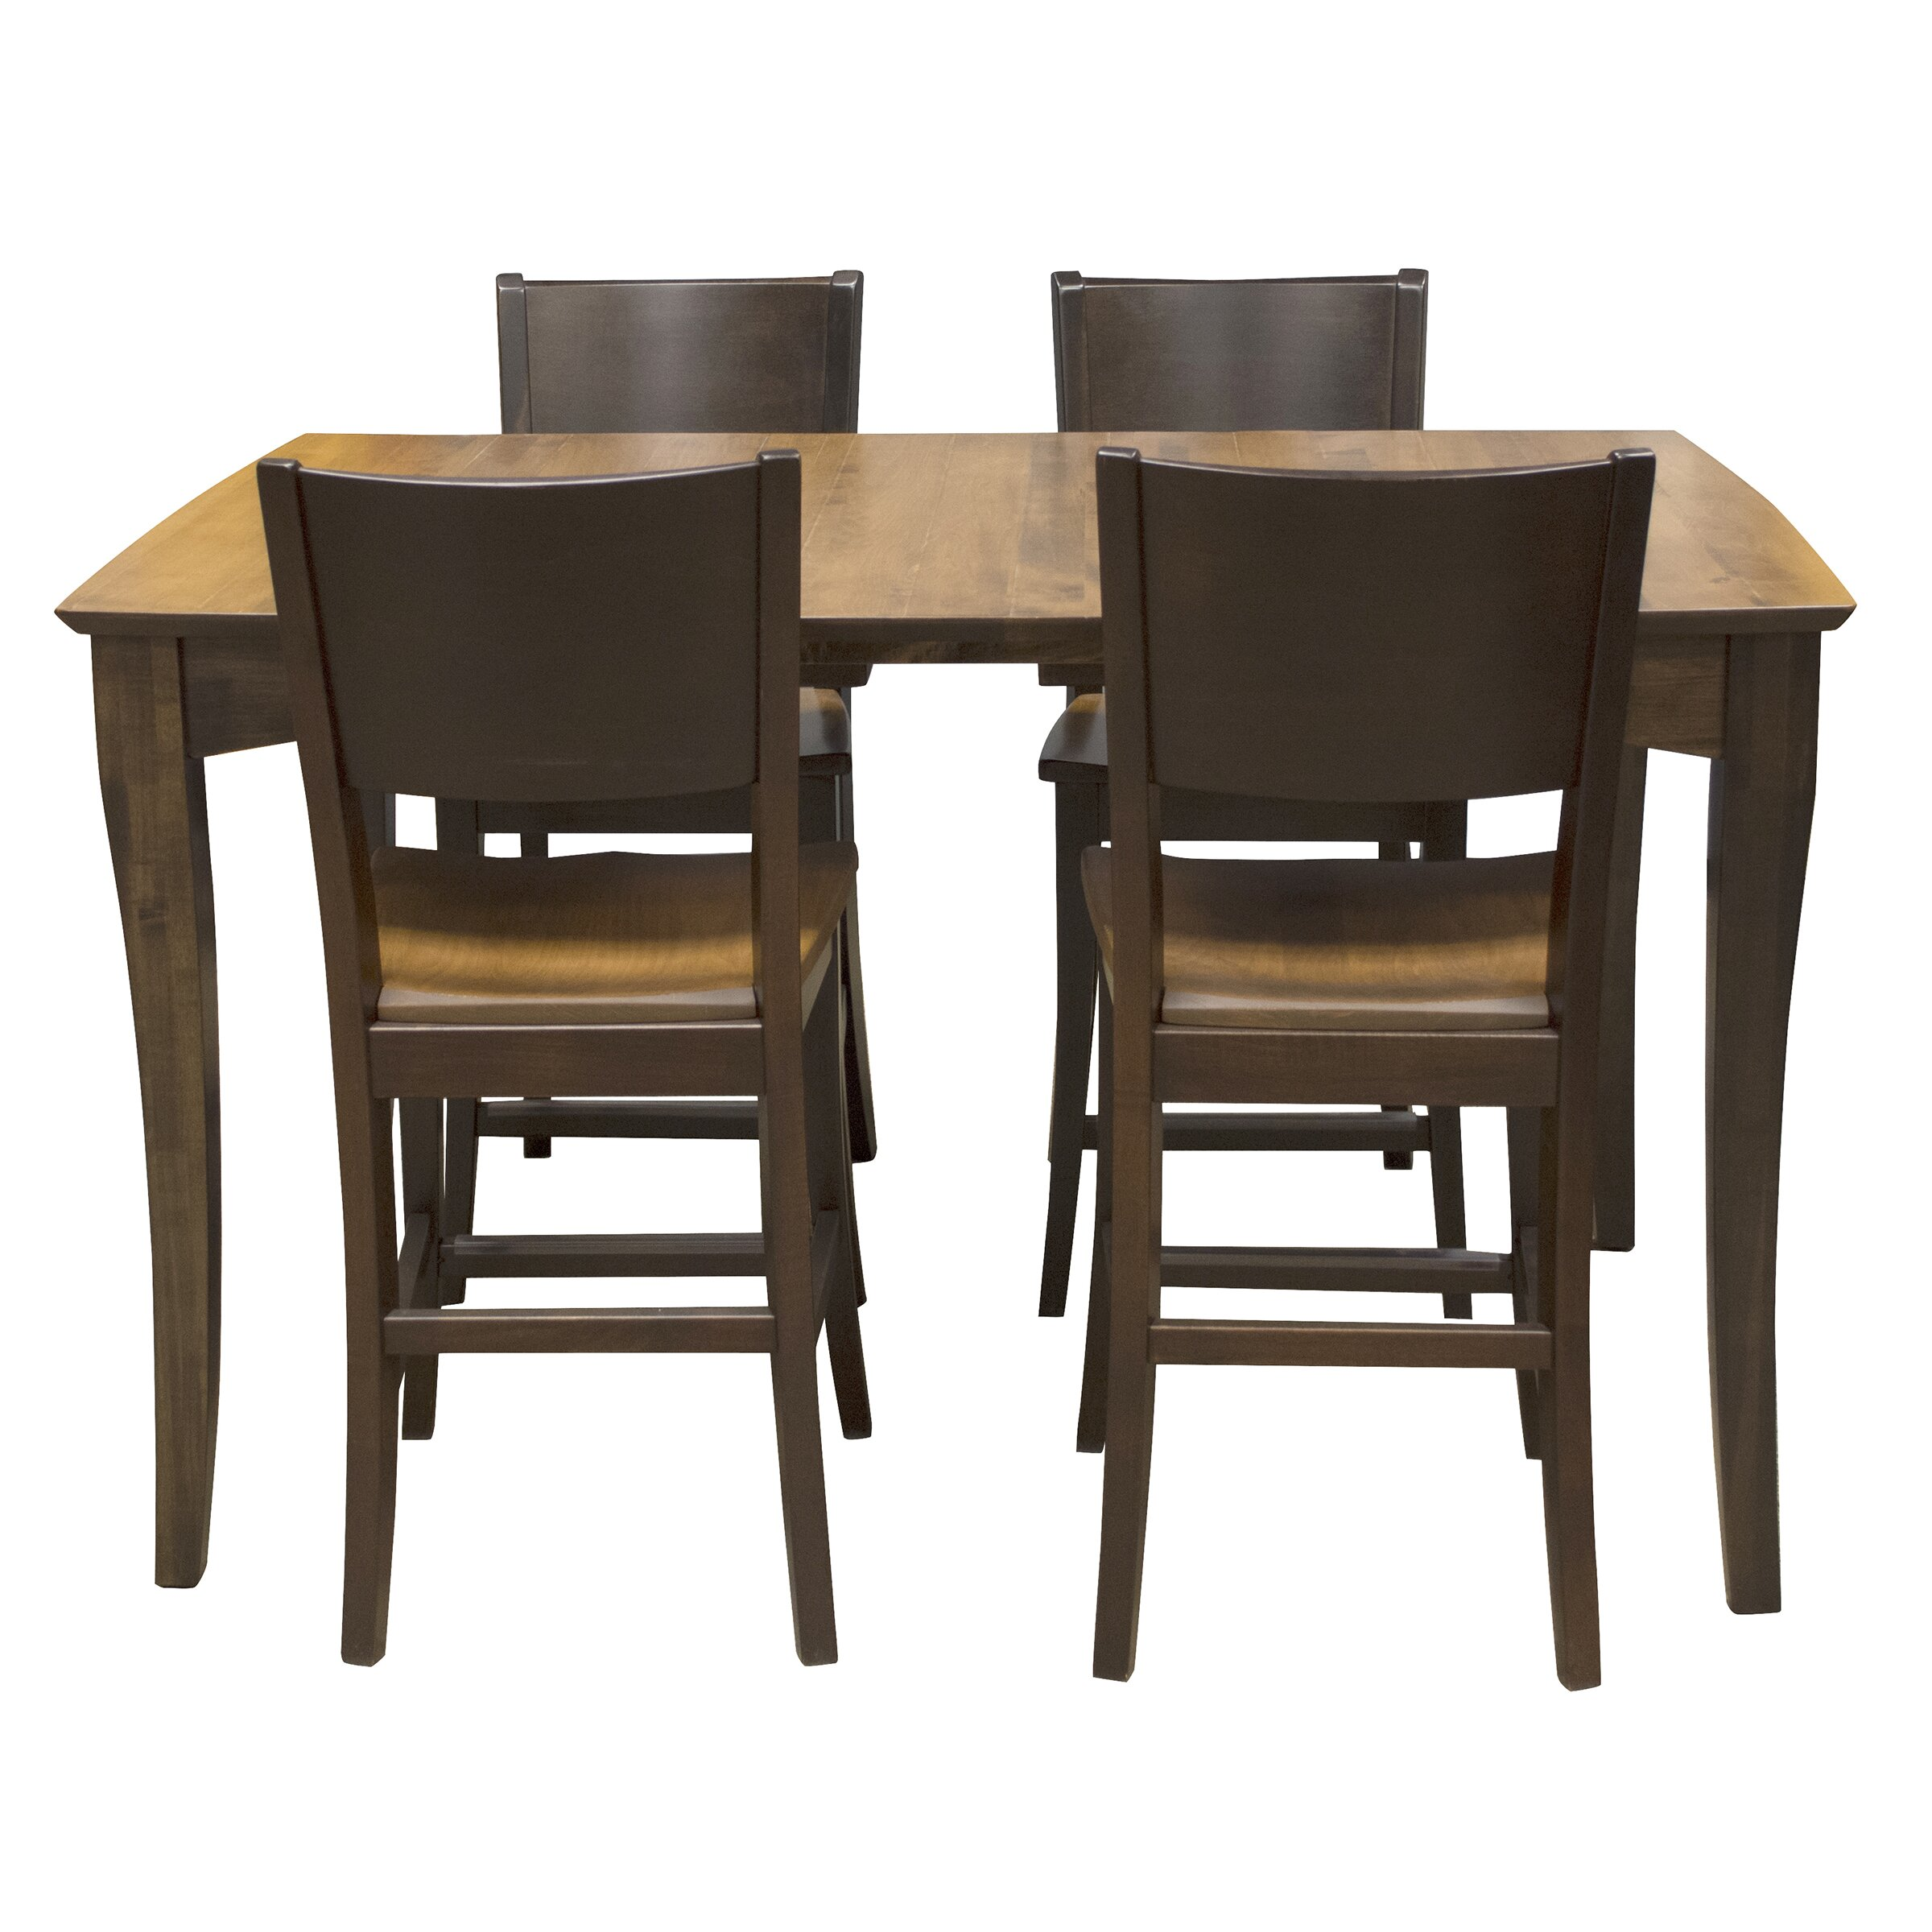 Amerihome 5 piece counter height dining set wayfair for Dining room tables made in usa